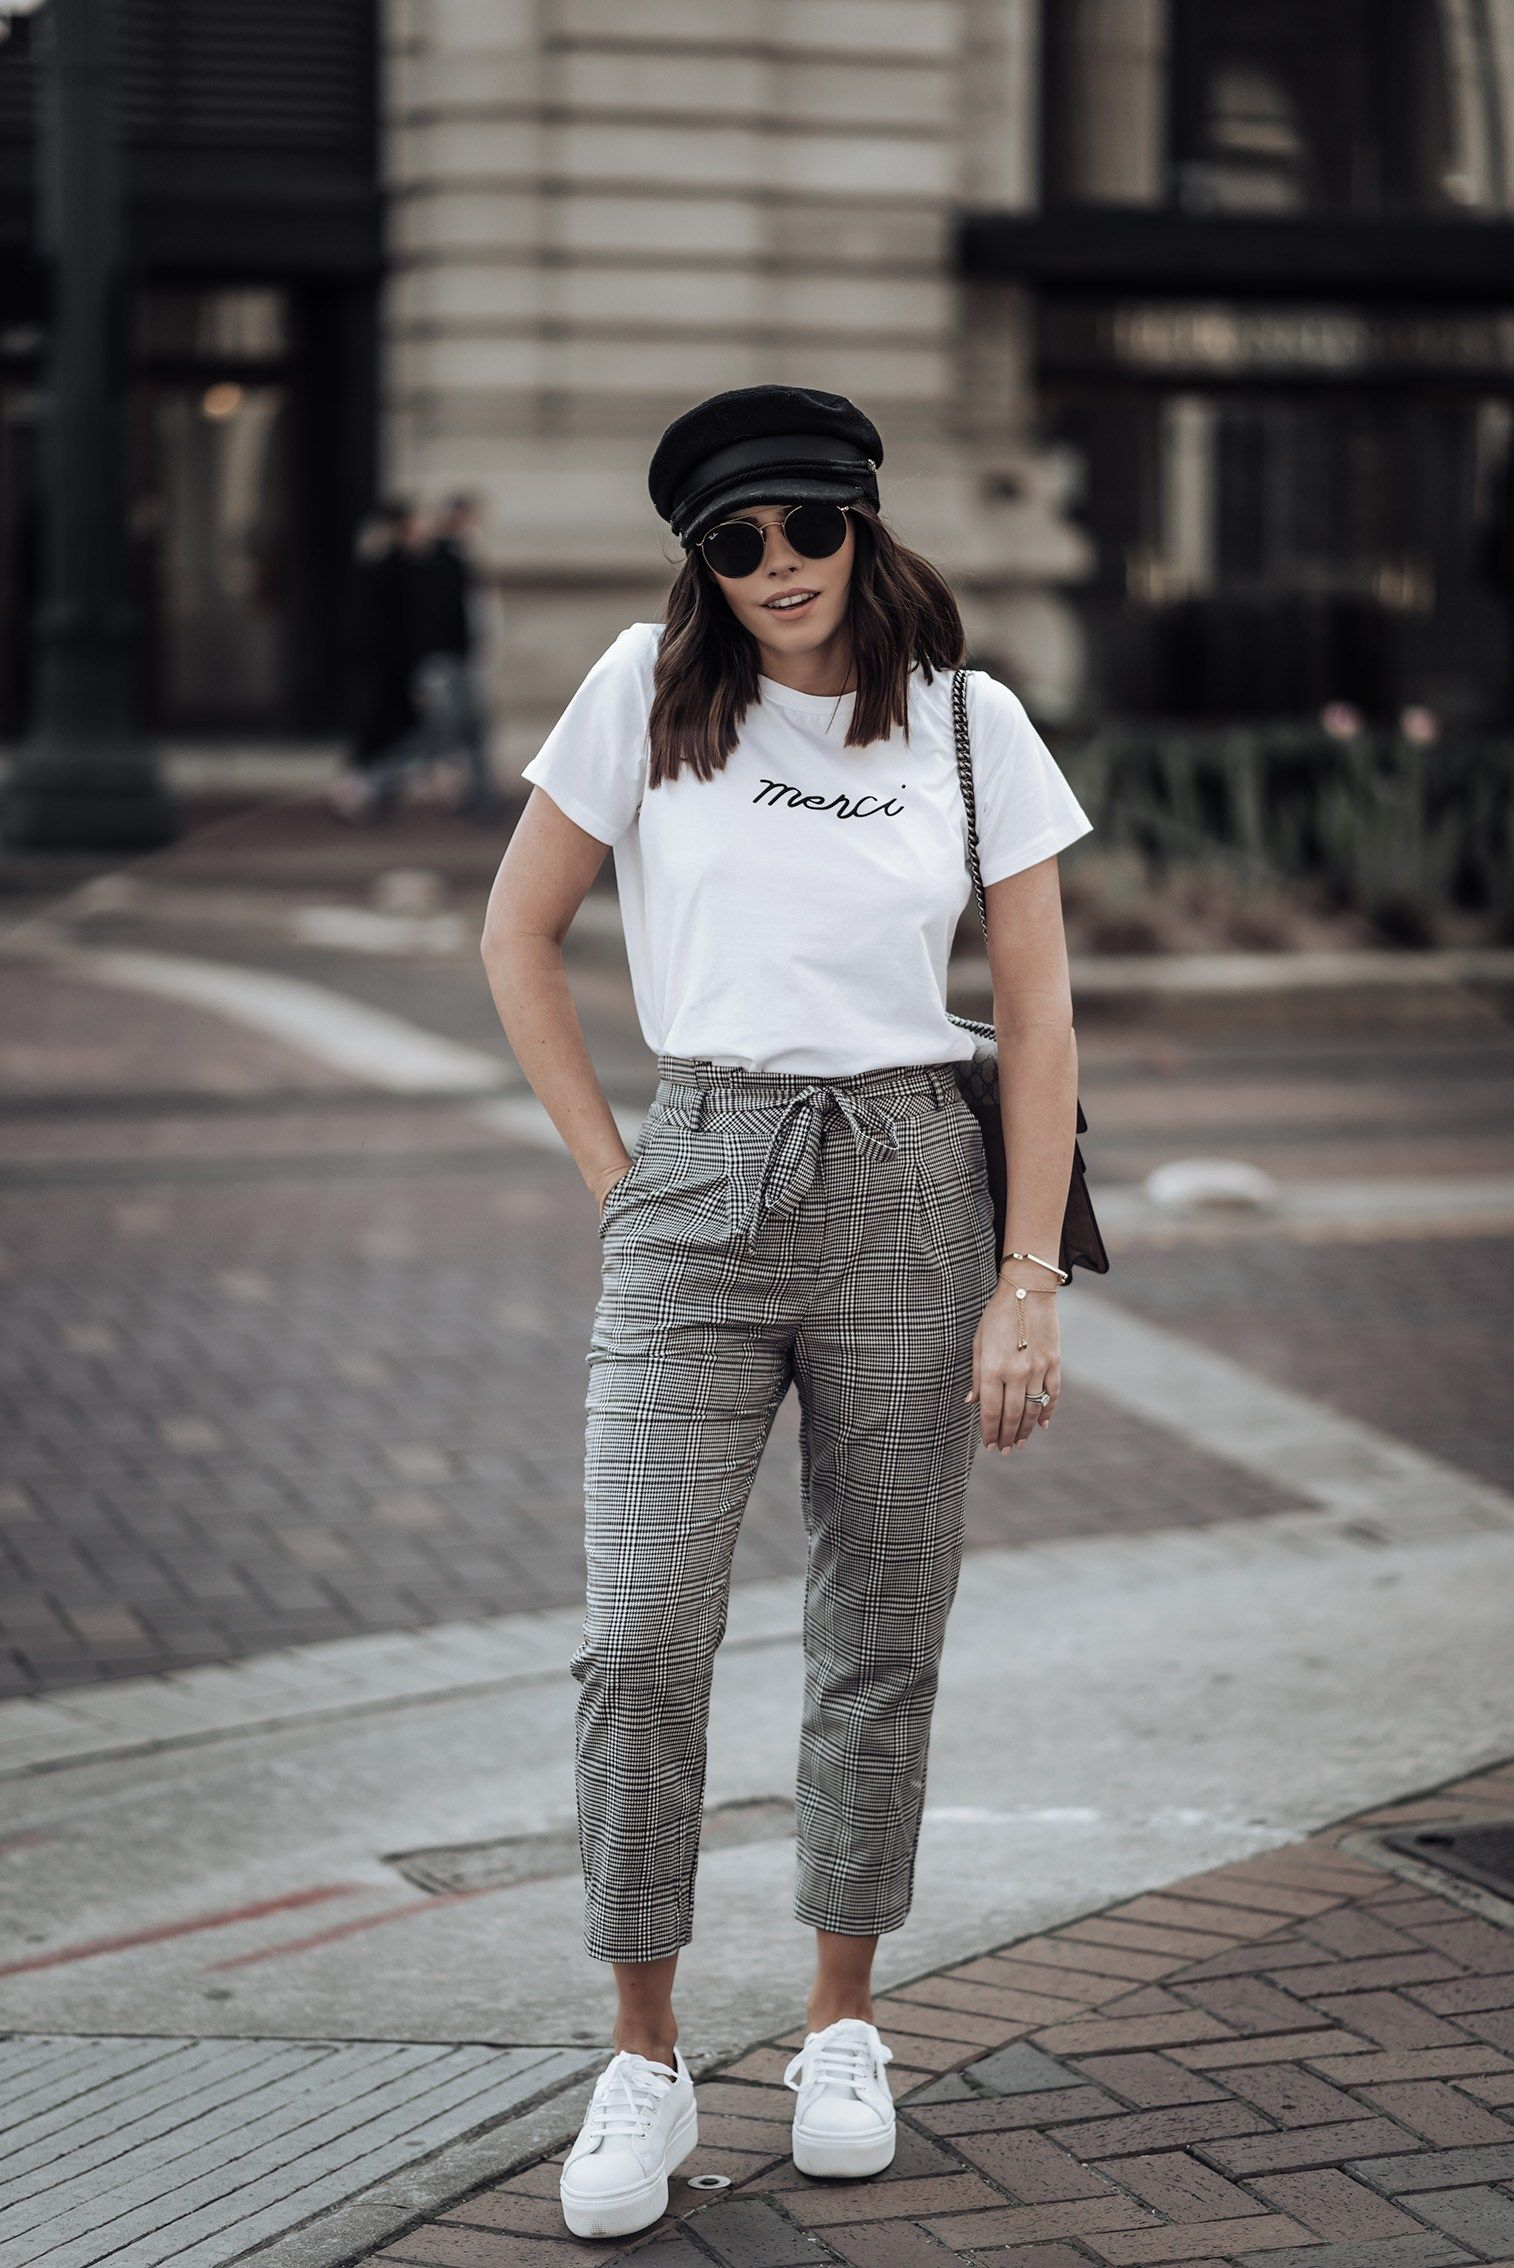 Check print pants currently trending 2018 street style  dcd014b1746ad